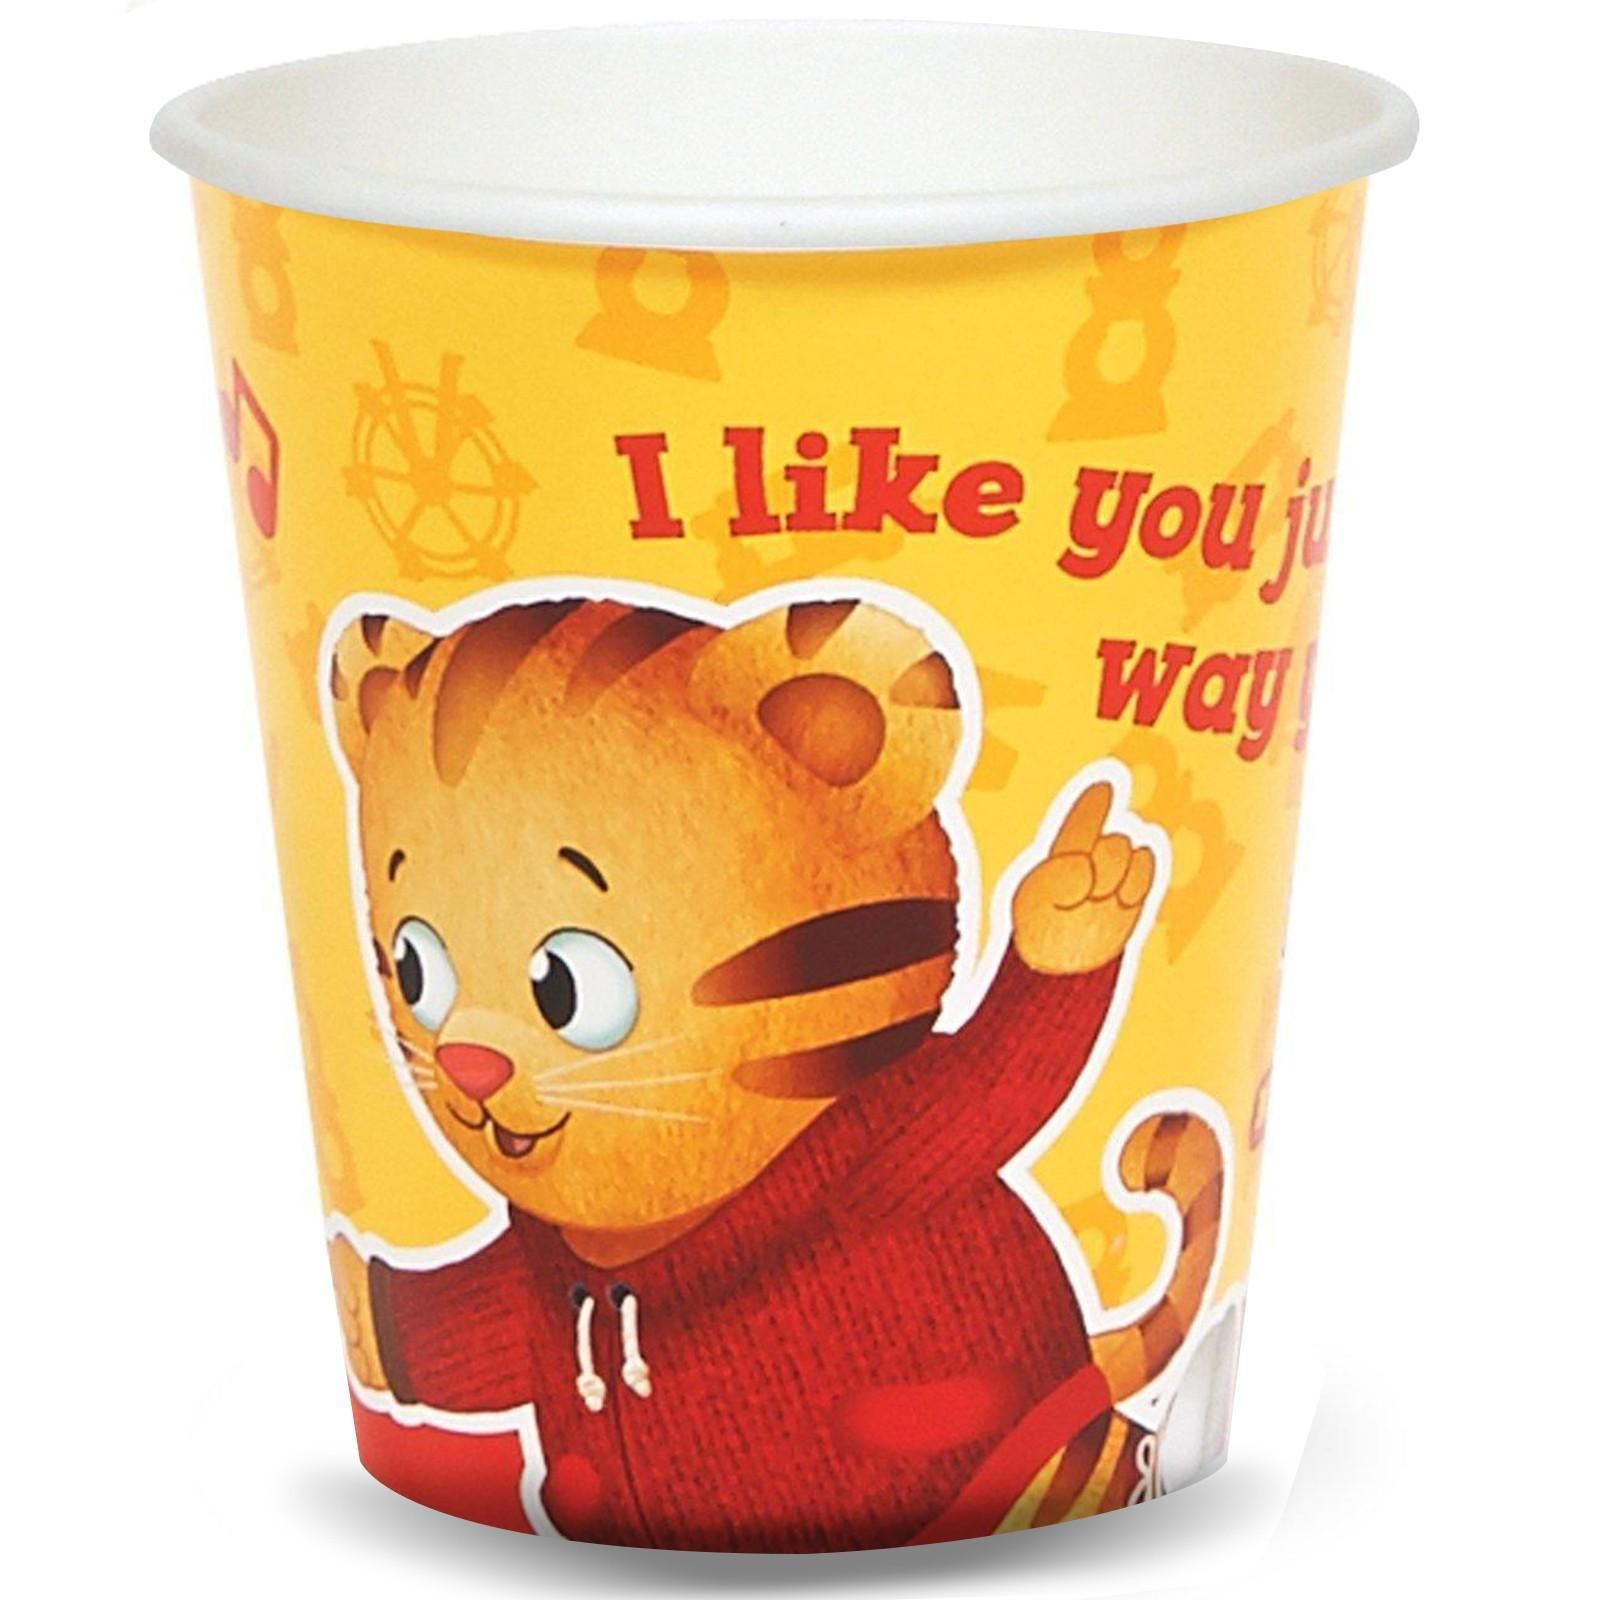 """Daniel Tiger's Neighborhood 9 oz. Paper Cups on BirthdayExpress.com - """"I like you just the way you are!"""" Every child is special and unique. What better way to celebrate than a toast in these cute cups!"""